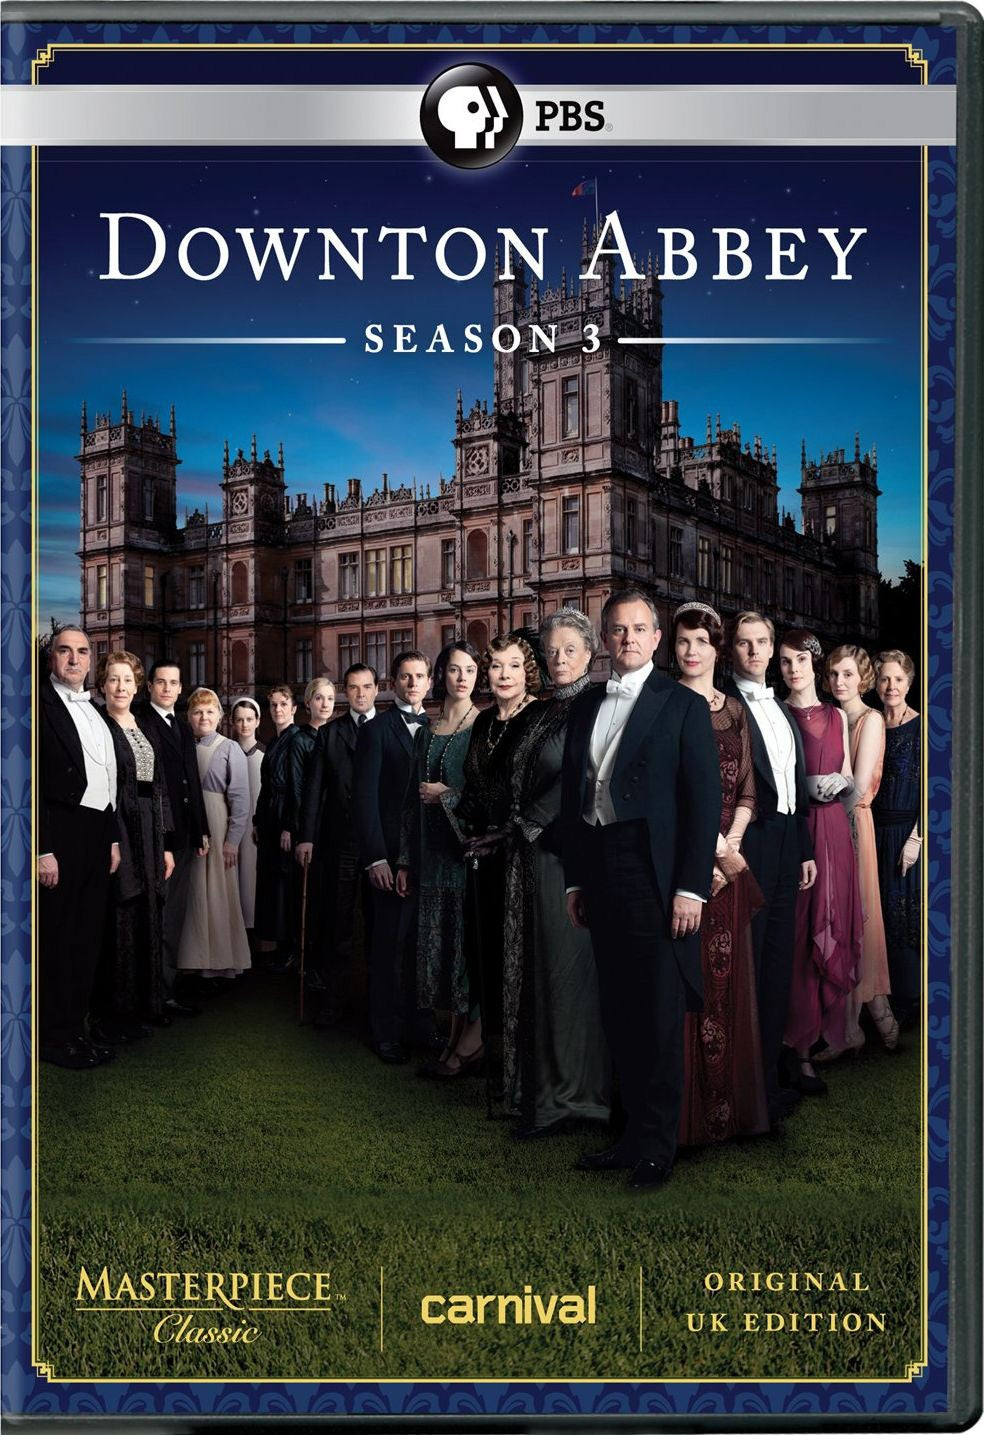 Masterpiece Classic: Downton Abbey: Season 3 (DVD)